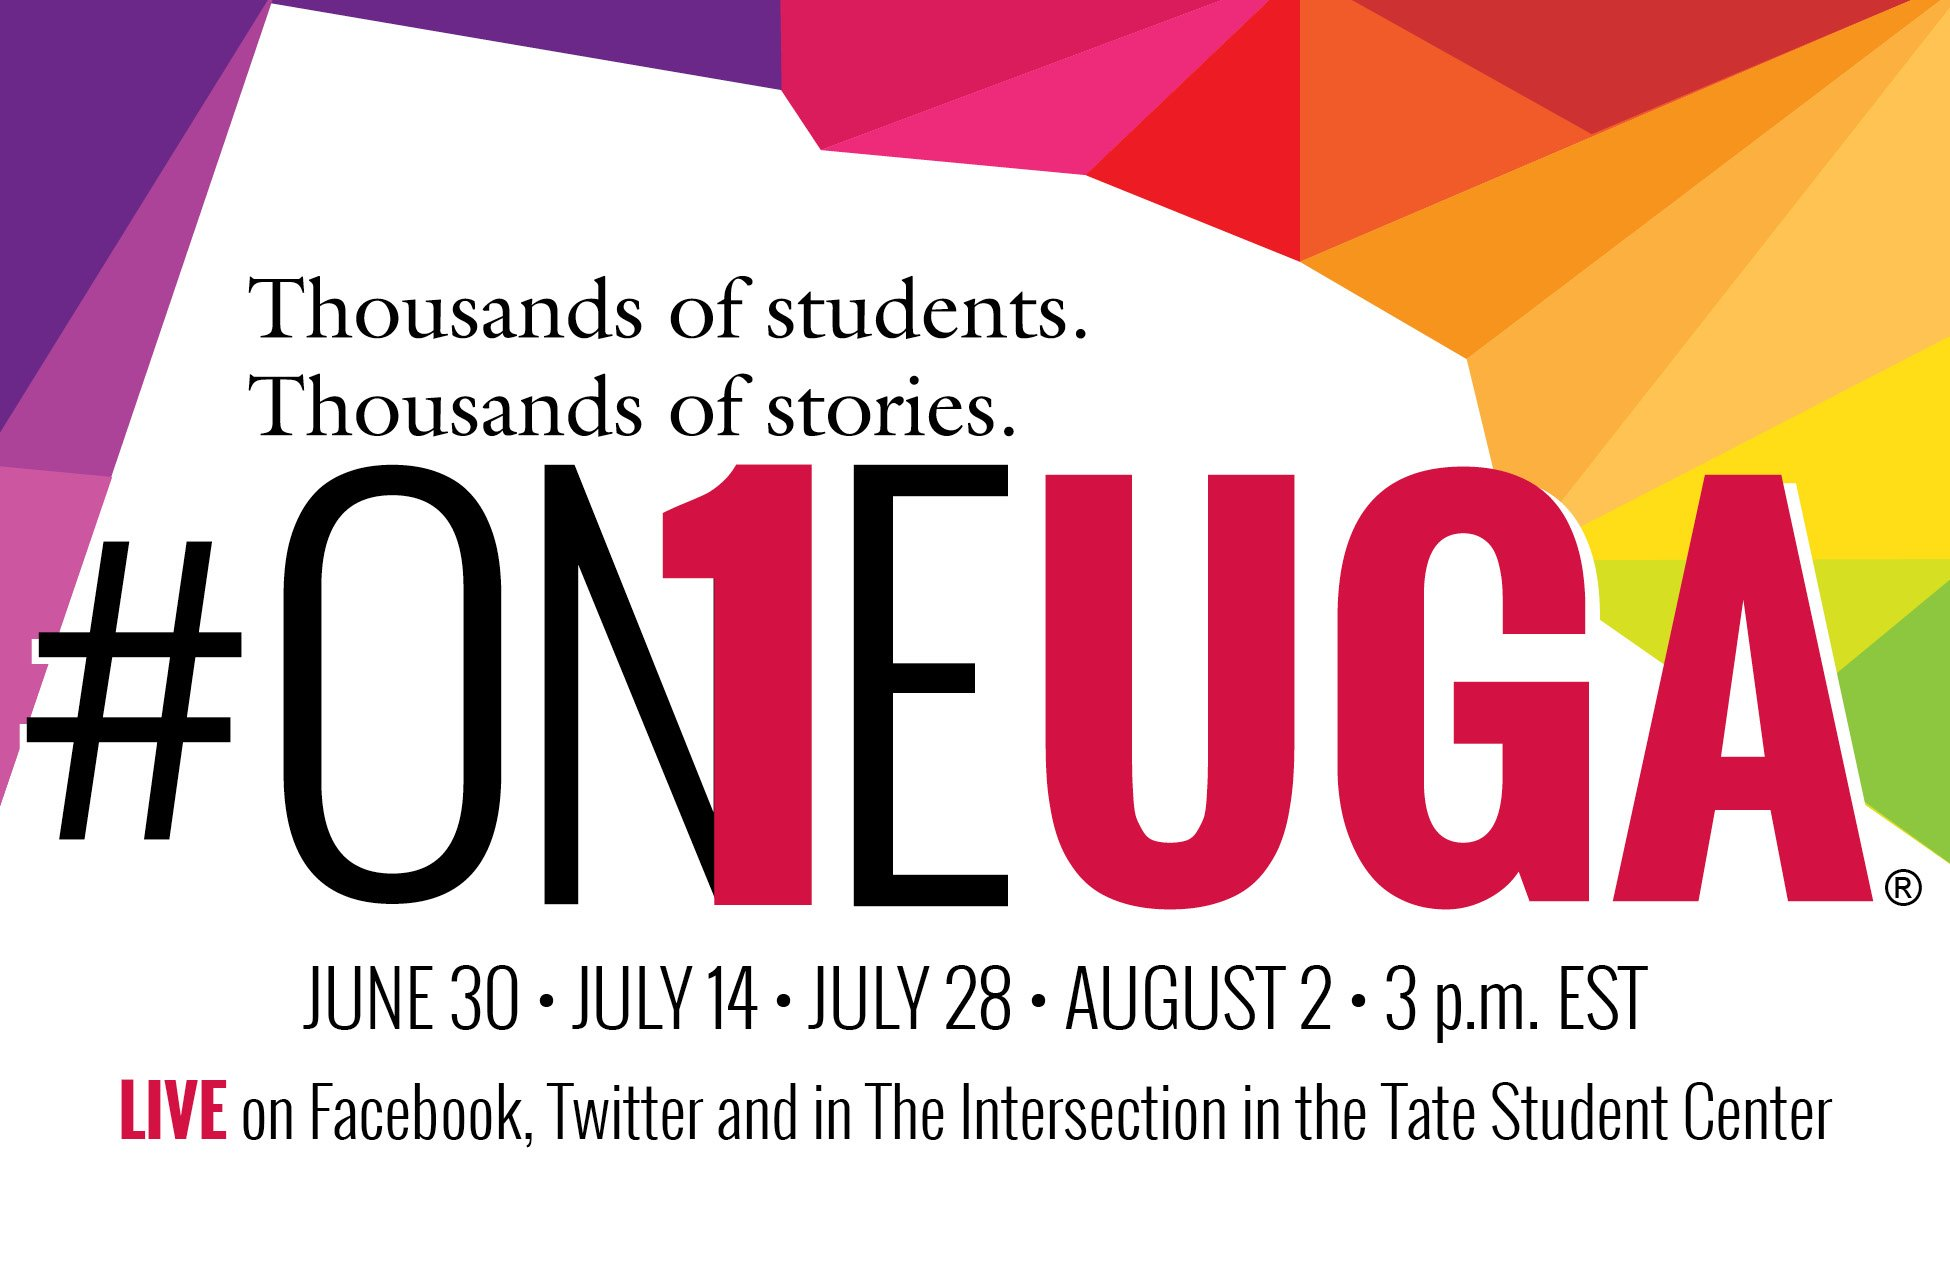 We are excited to once again participate in the #OneUGA conversation! https://t.co/yhAUArPYHM